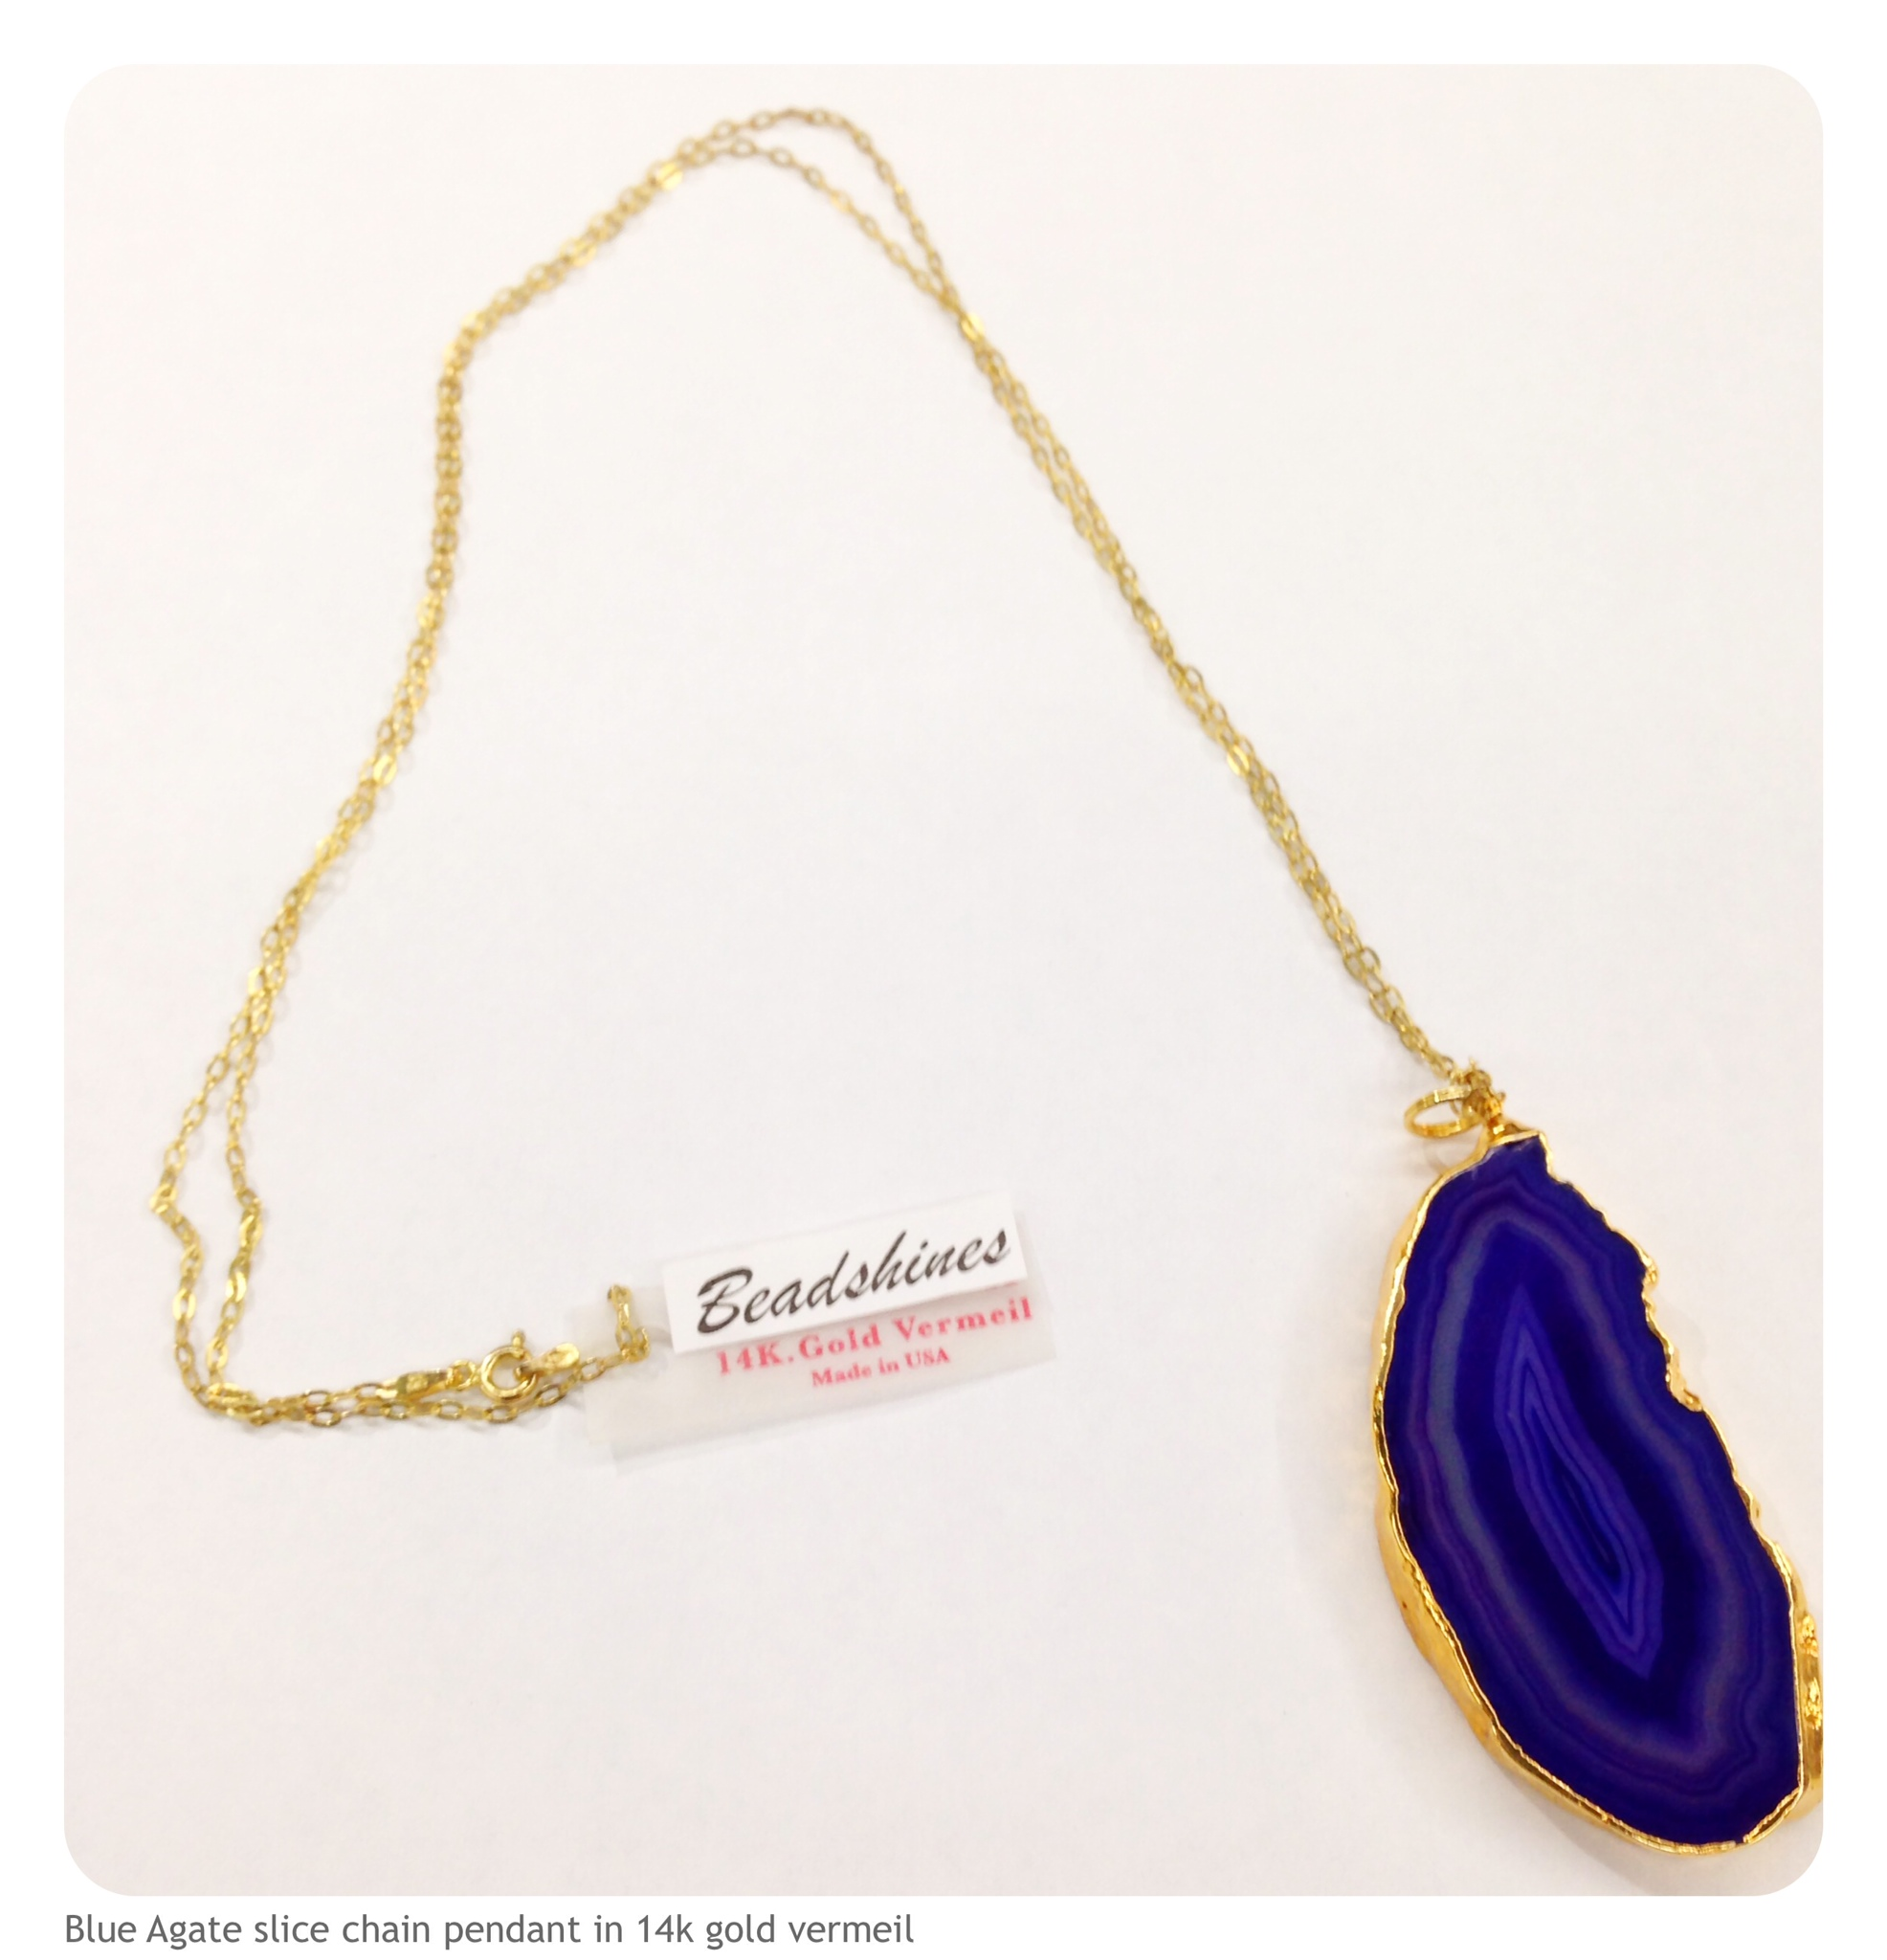 Blue agate slice 14k gold vermeil chain beadshines for Fashion jewelry district los angeles